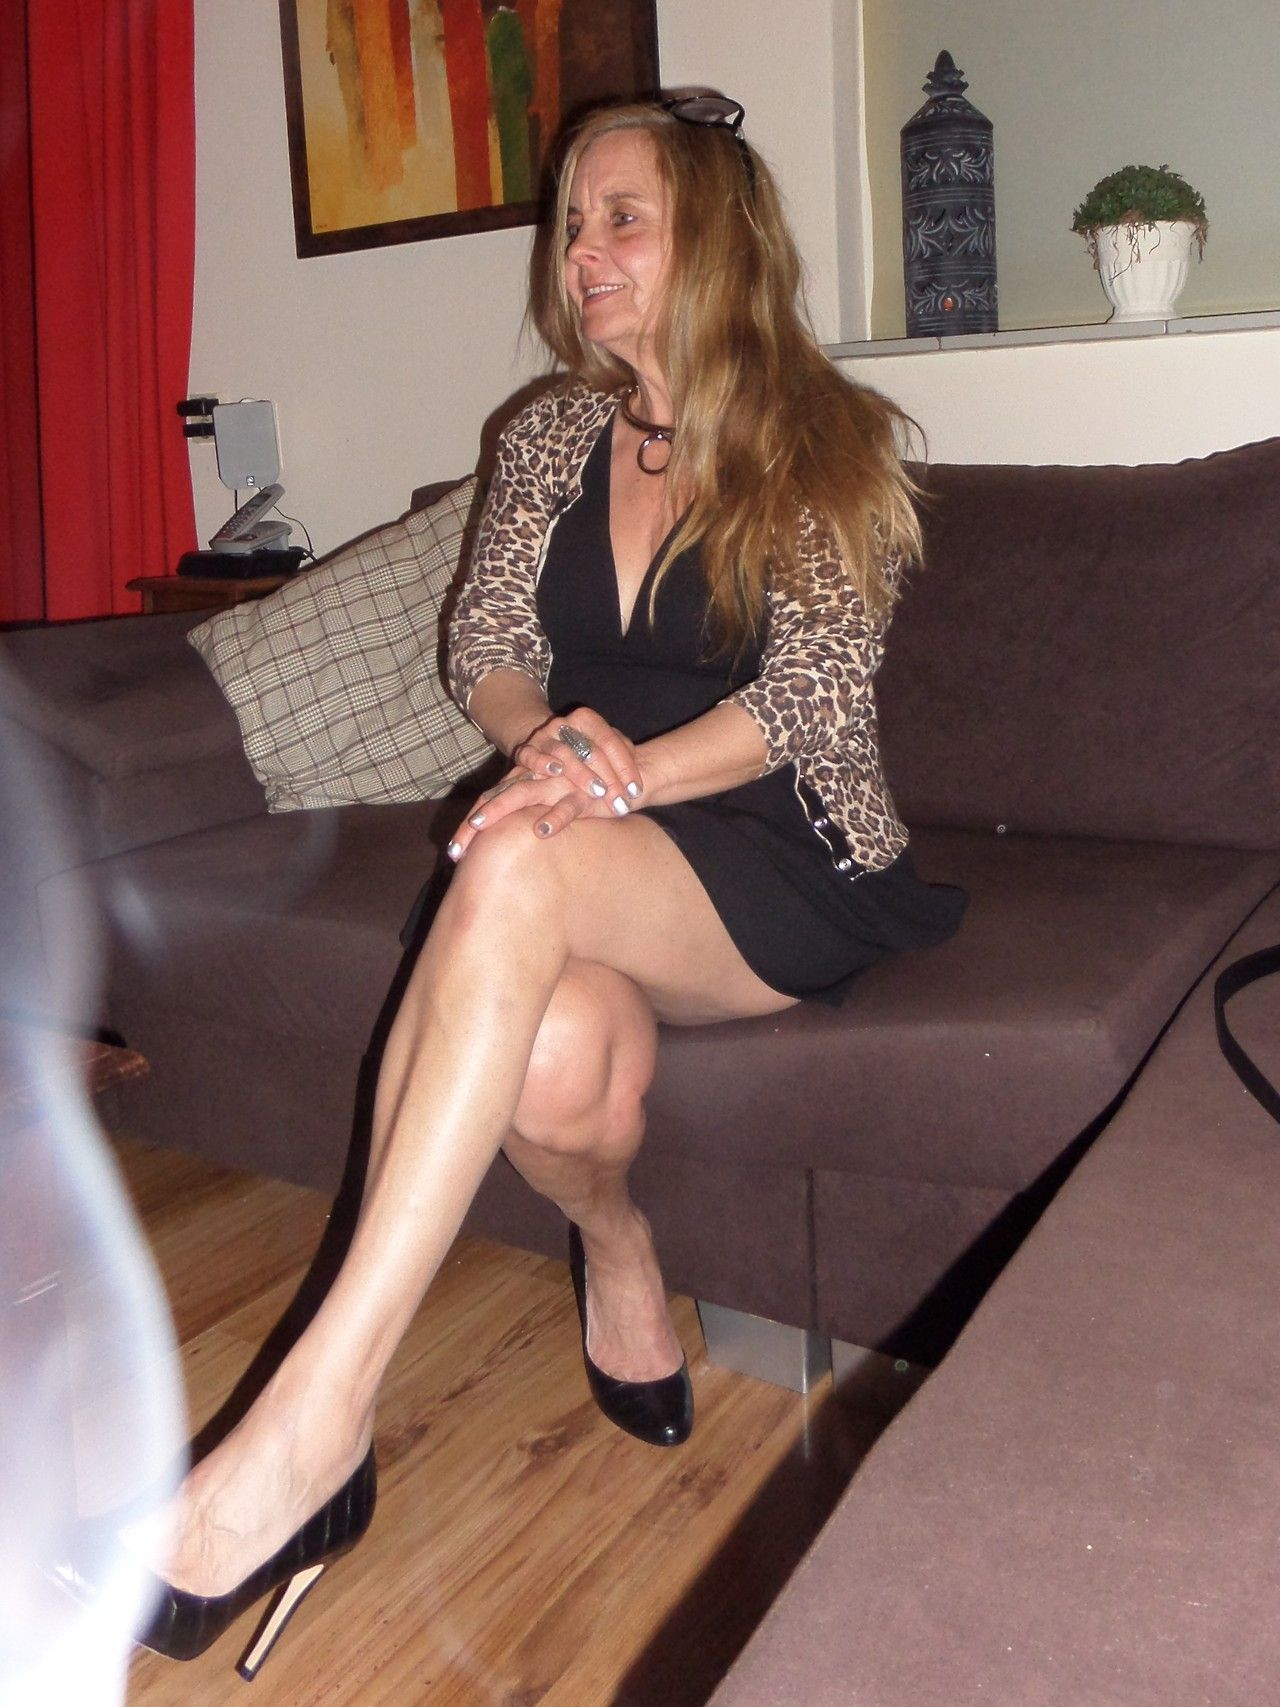 Granny Showing Legs  Mmmmmm In 2019 - Mature Fashion -7712